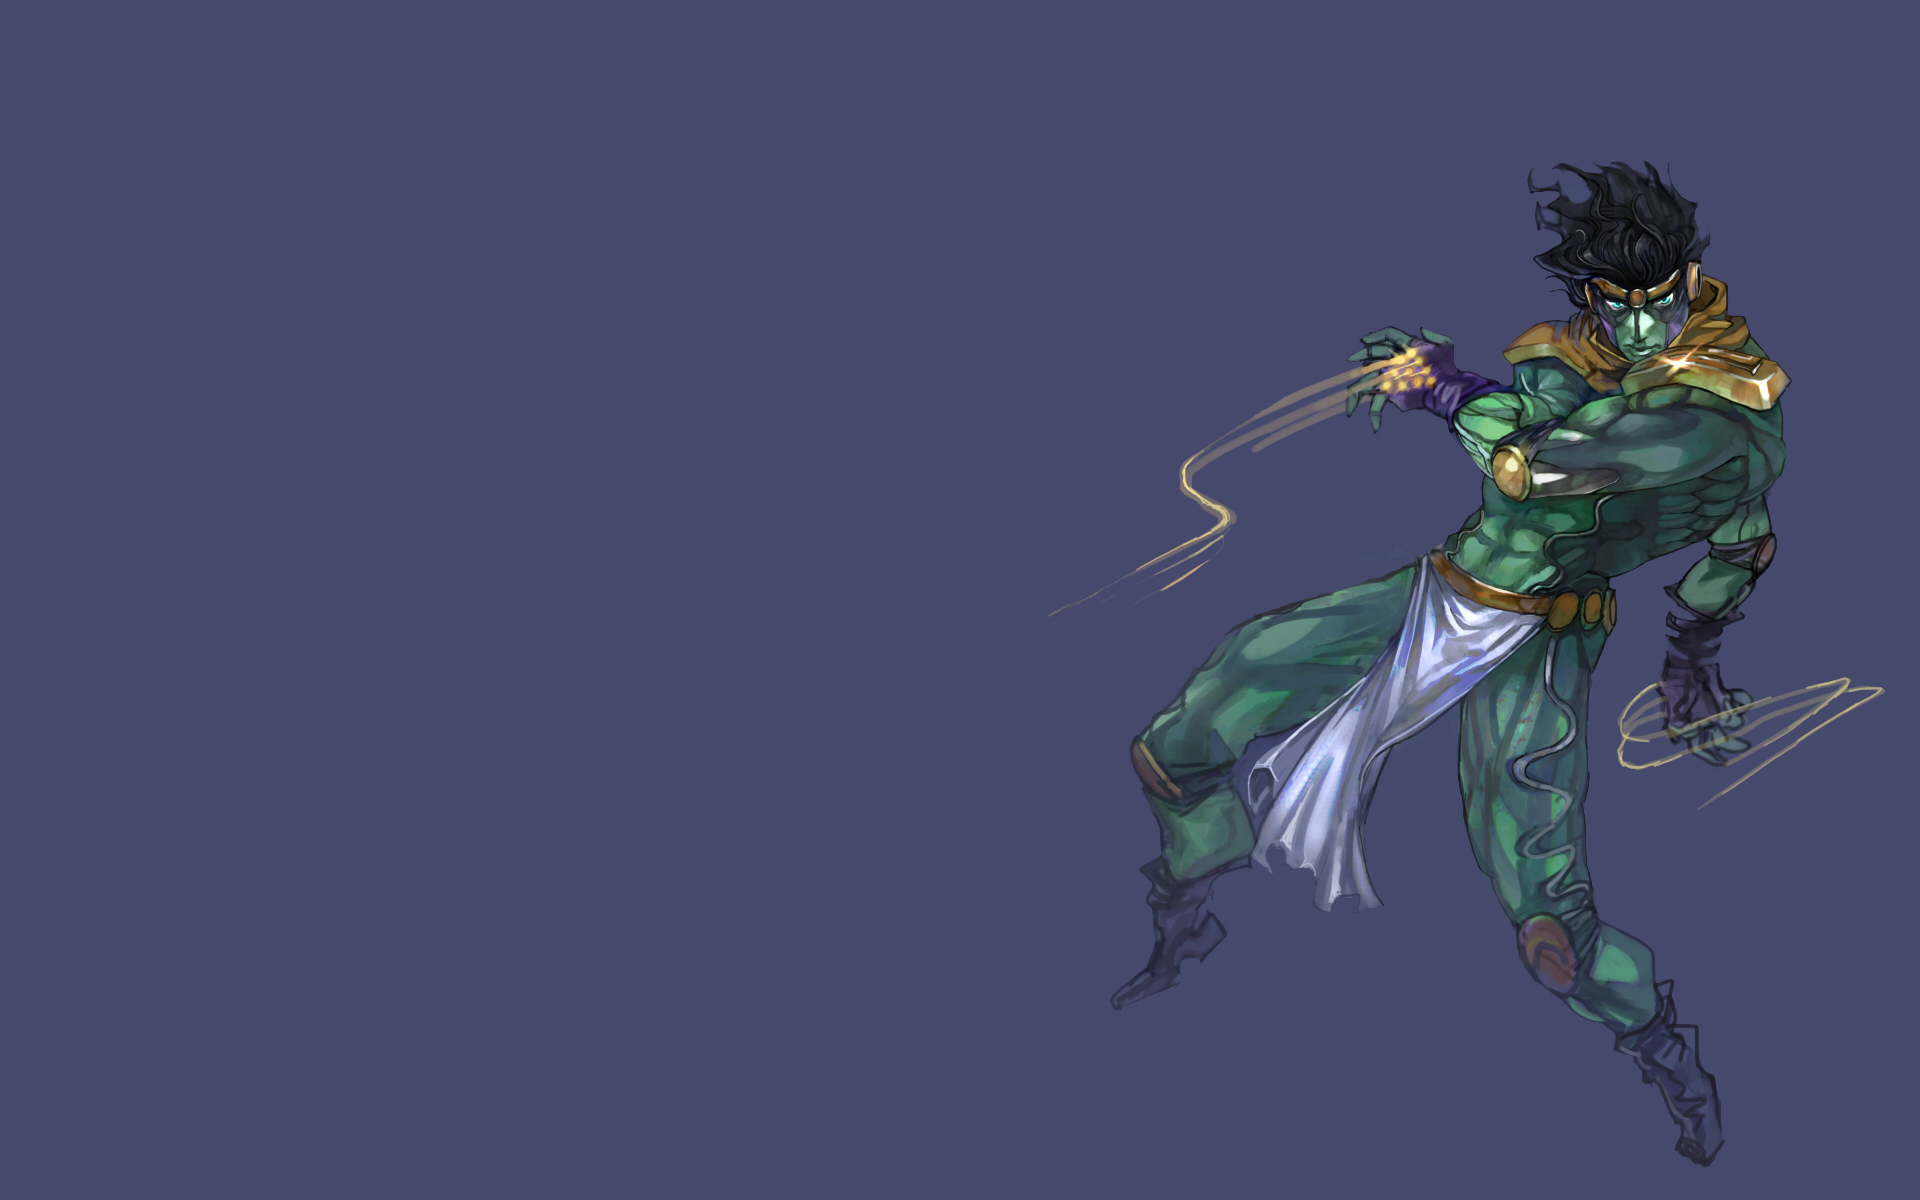 2560x1024 Jotaro Kujo Anime 2560x1024 Resolution Wallpaper Hd Anime 4k Wallpapers Images Photos And Background